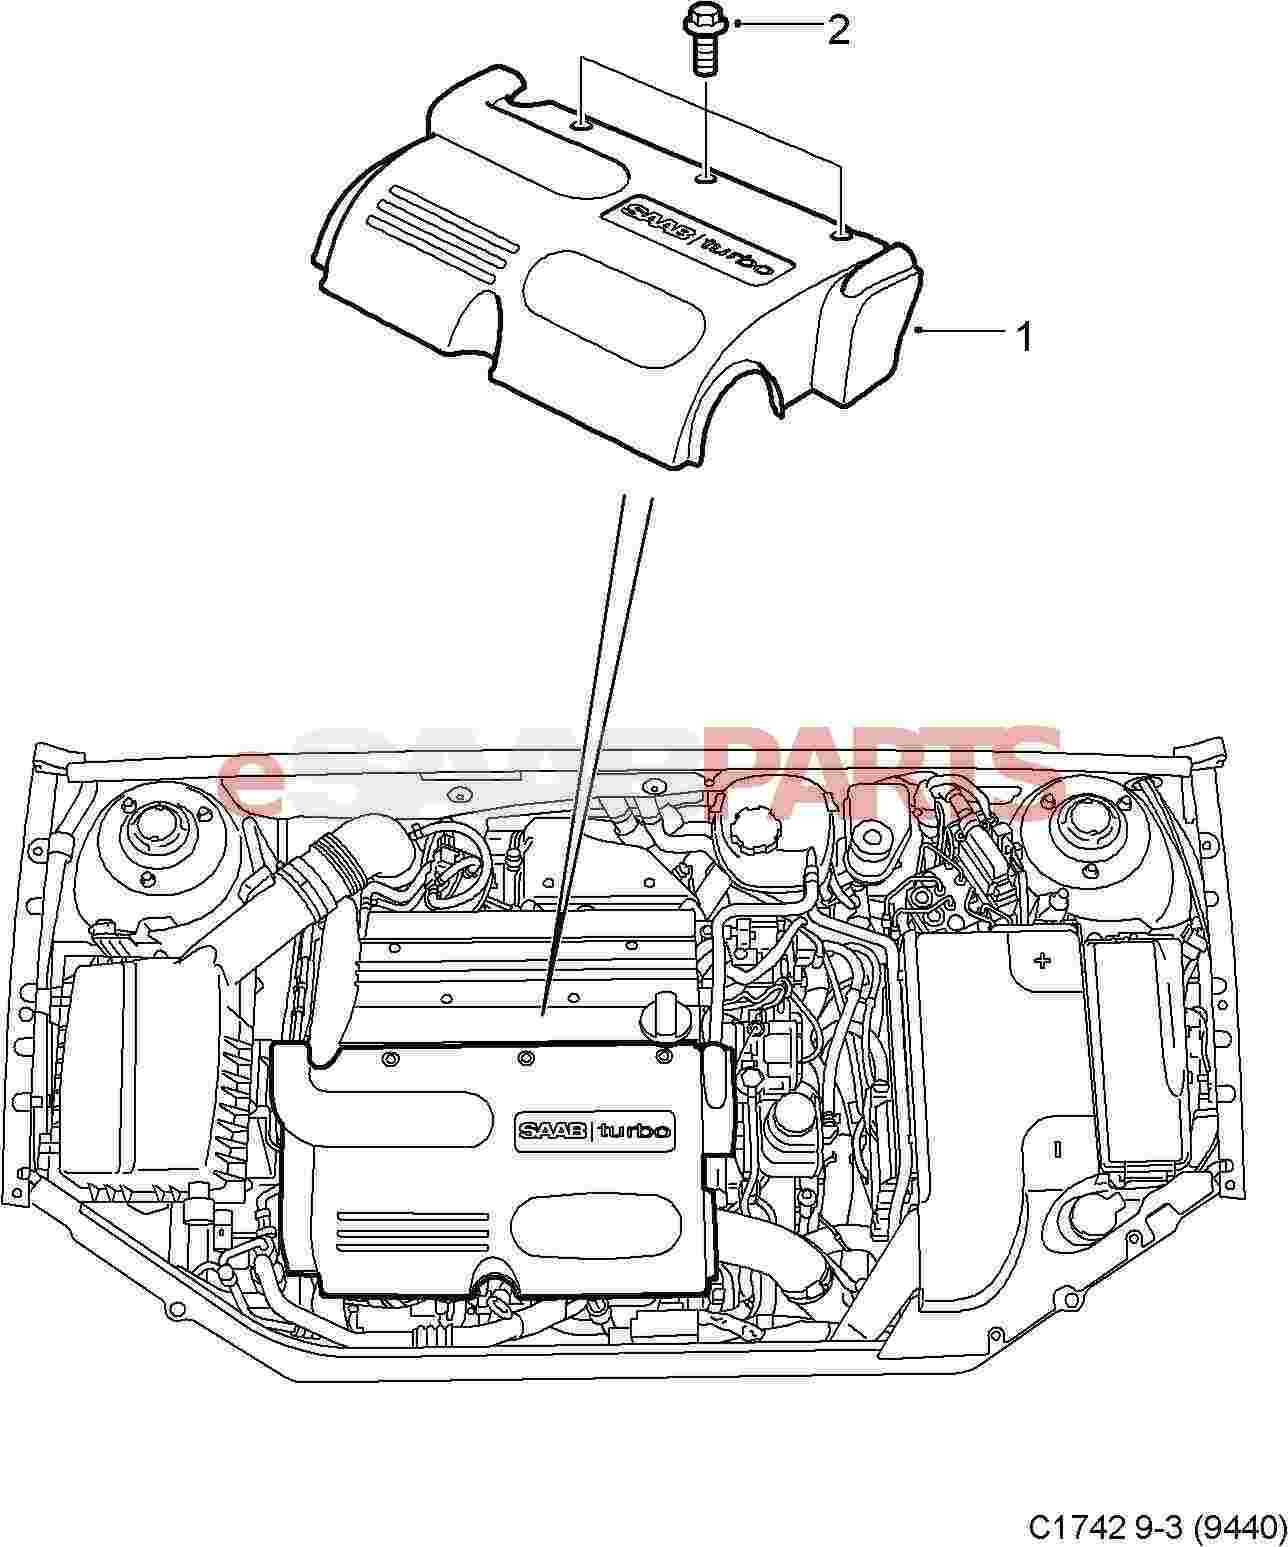 03 Saab 9 3 Engine Diagram Wiring Diagram Enable Enable Wallabyviaggi It